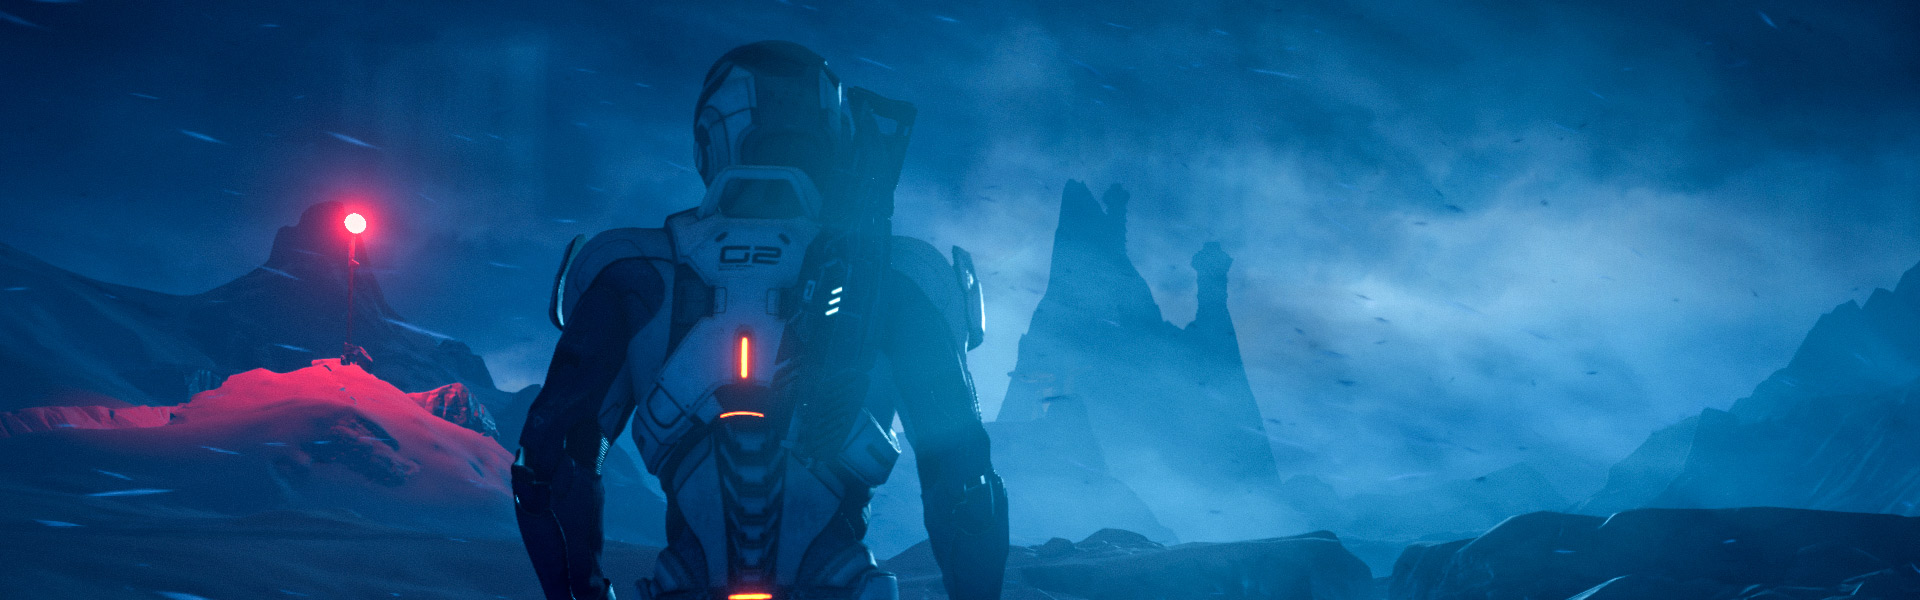 image by EA on the official PlayStation Blog website